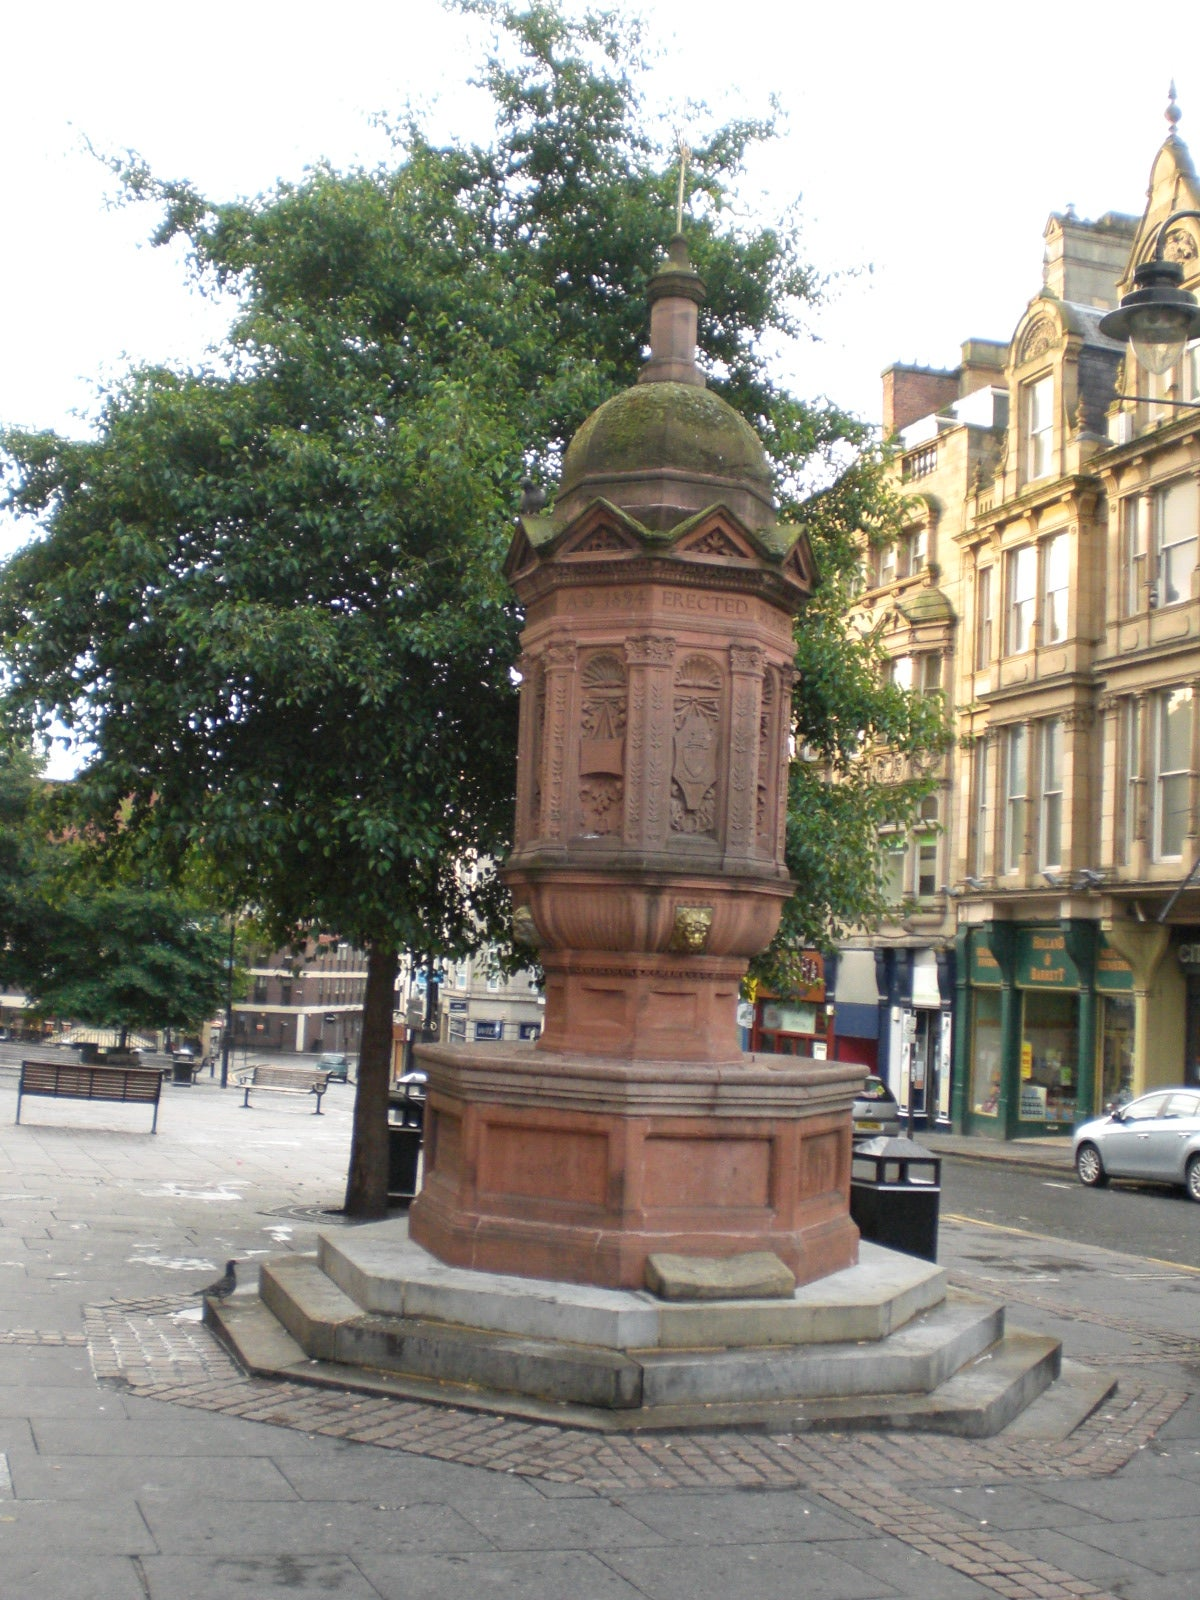 Fuente de Rutherford